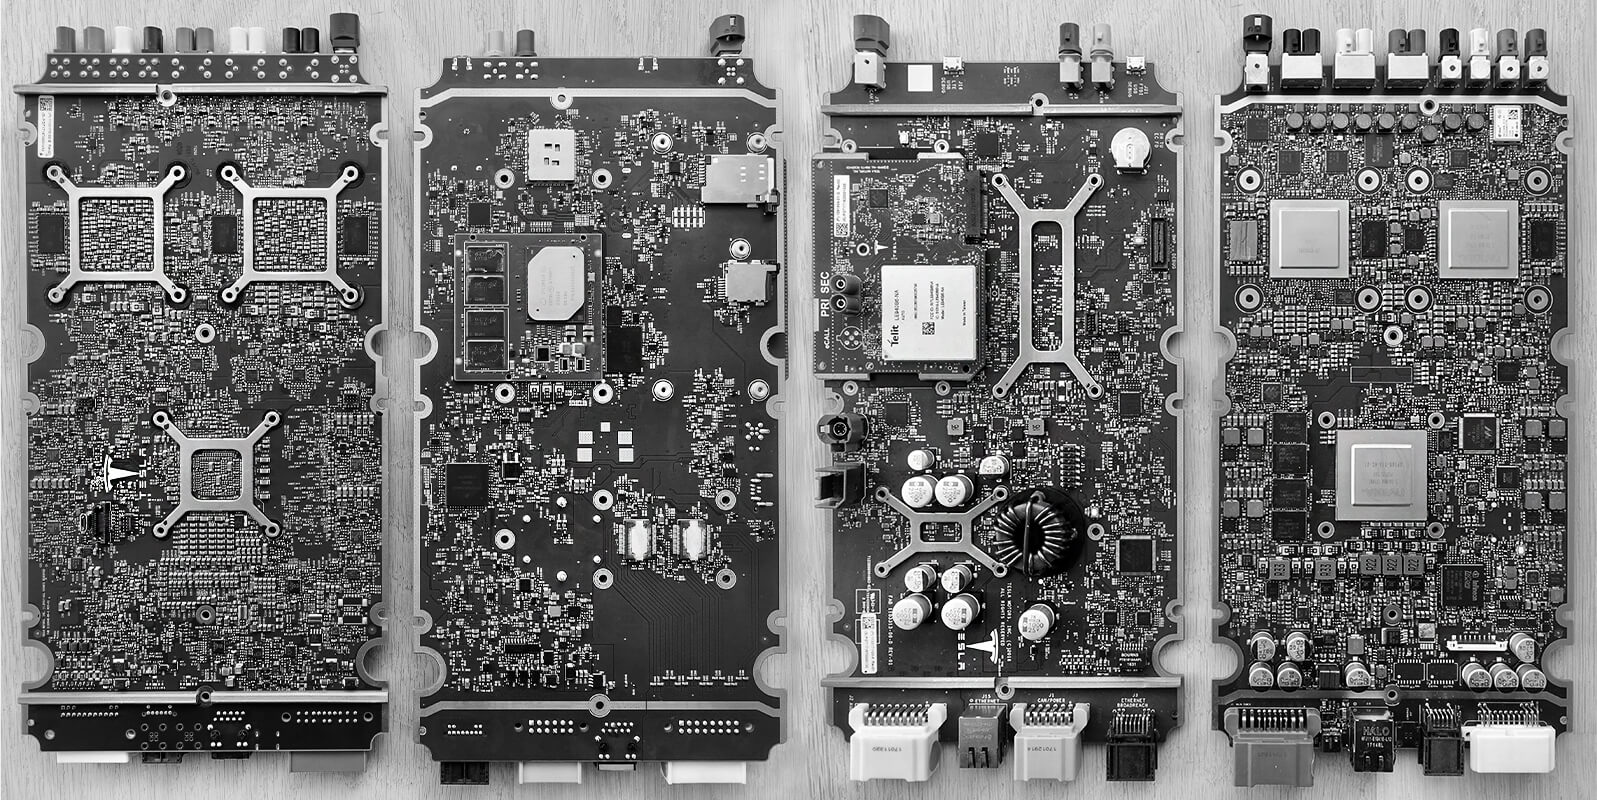 Tesla HW2.5 module and Infotainment Board from a Model 3